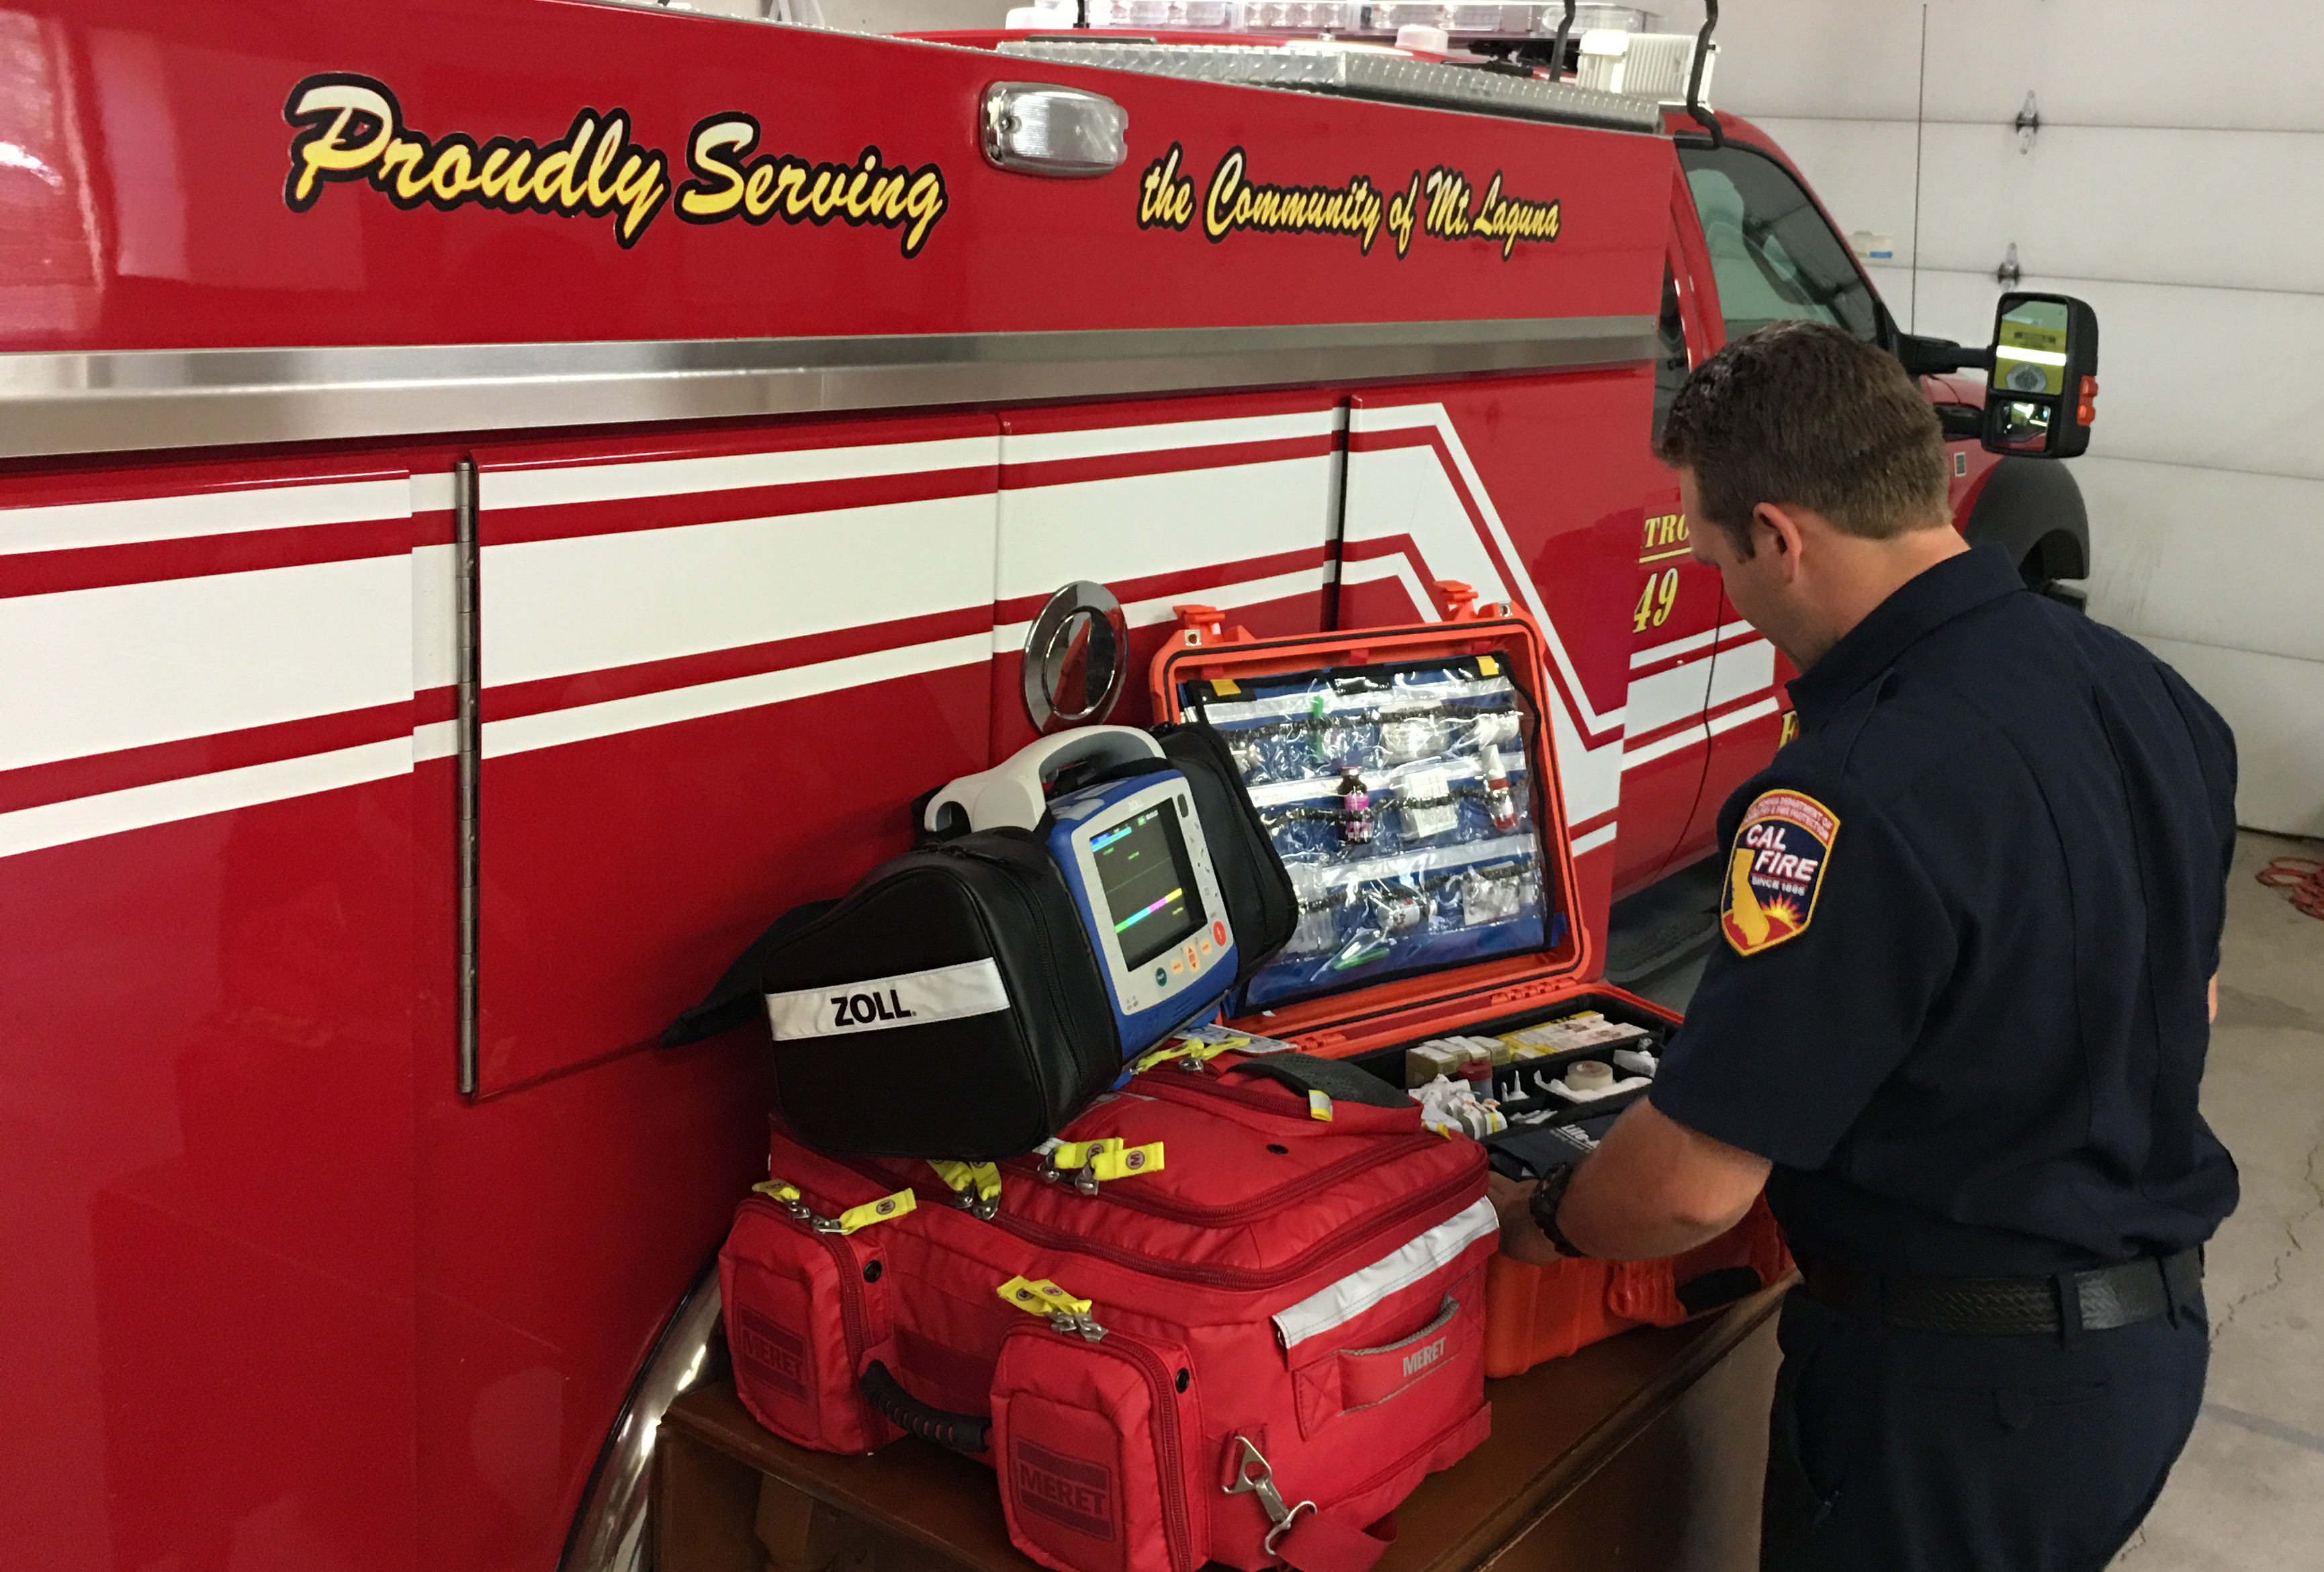 Firefighter Paramedic Brenton Rowell from the Mt. Laguna County Fire Station is completing his morning checks of the Advanced Life Support gear.